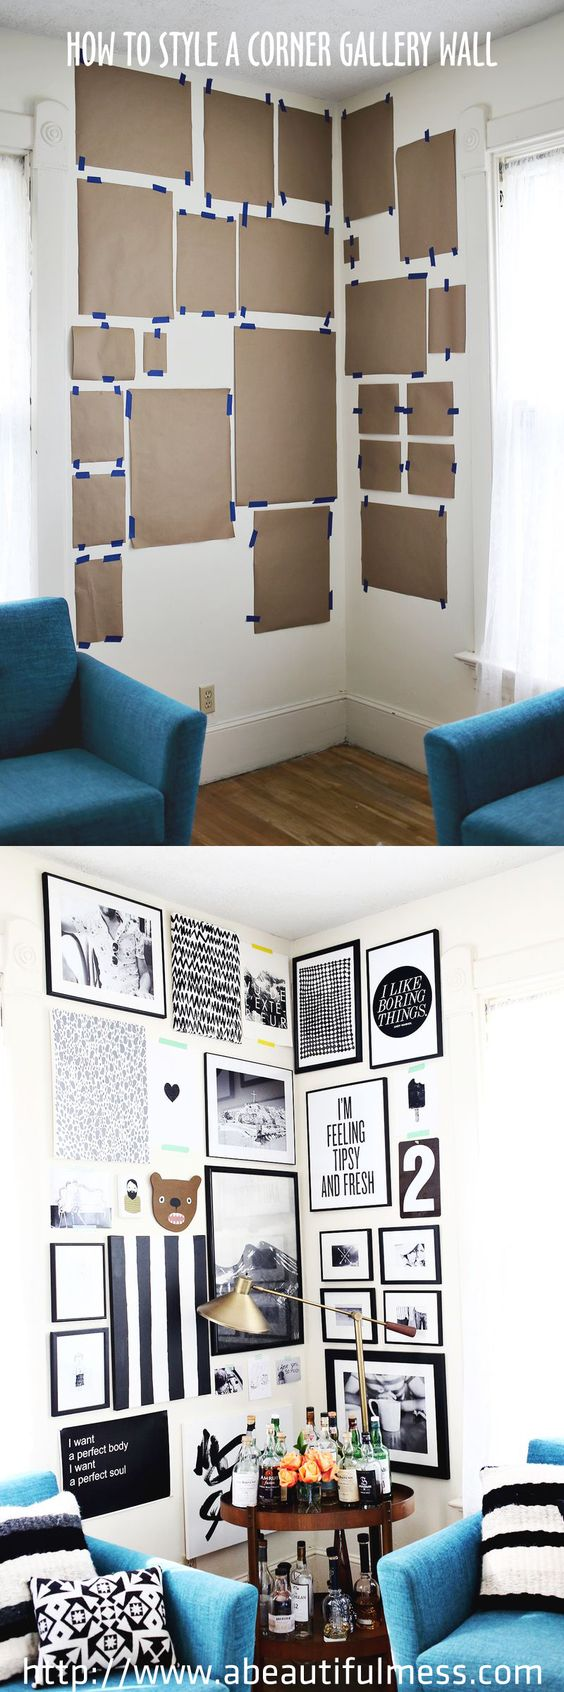 How To Style A Corner Gallery Wall Best Home Decoration